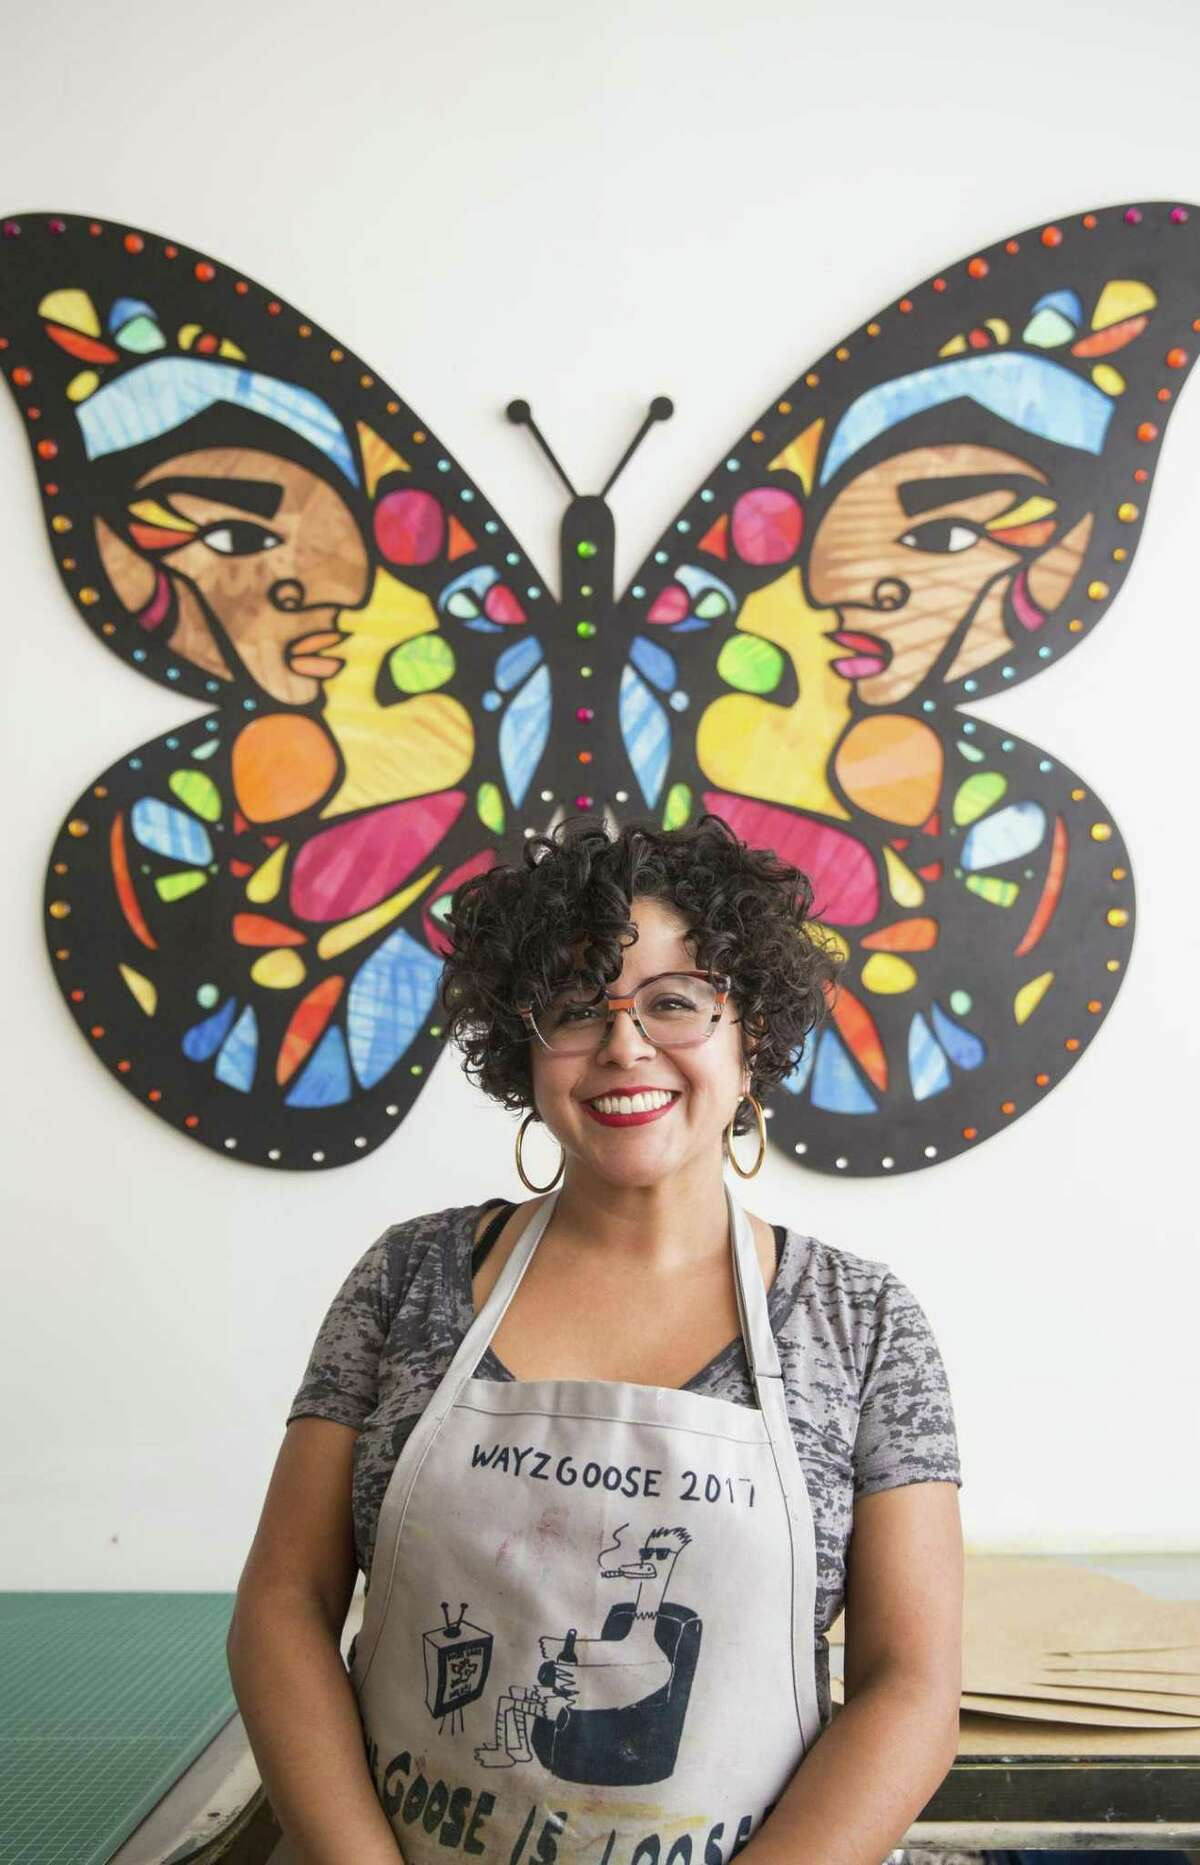 Multimedia artist Favianna Rodriguez at her Oakland studio. She also runs a nonprofit called Culture Strike, which empowers artists to advocate for causes through their work.